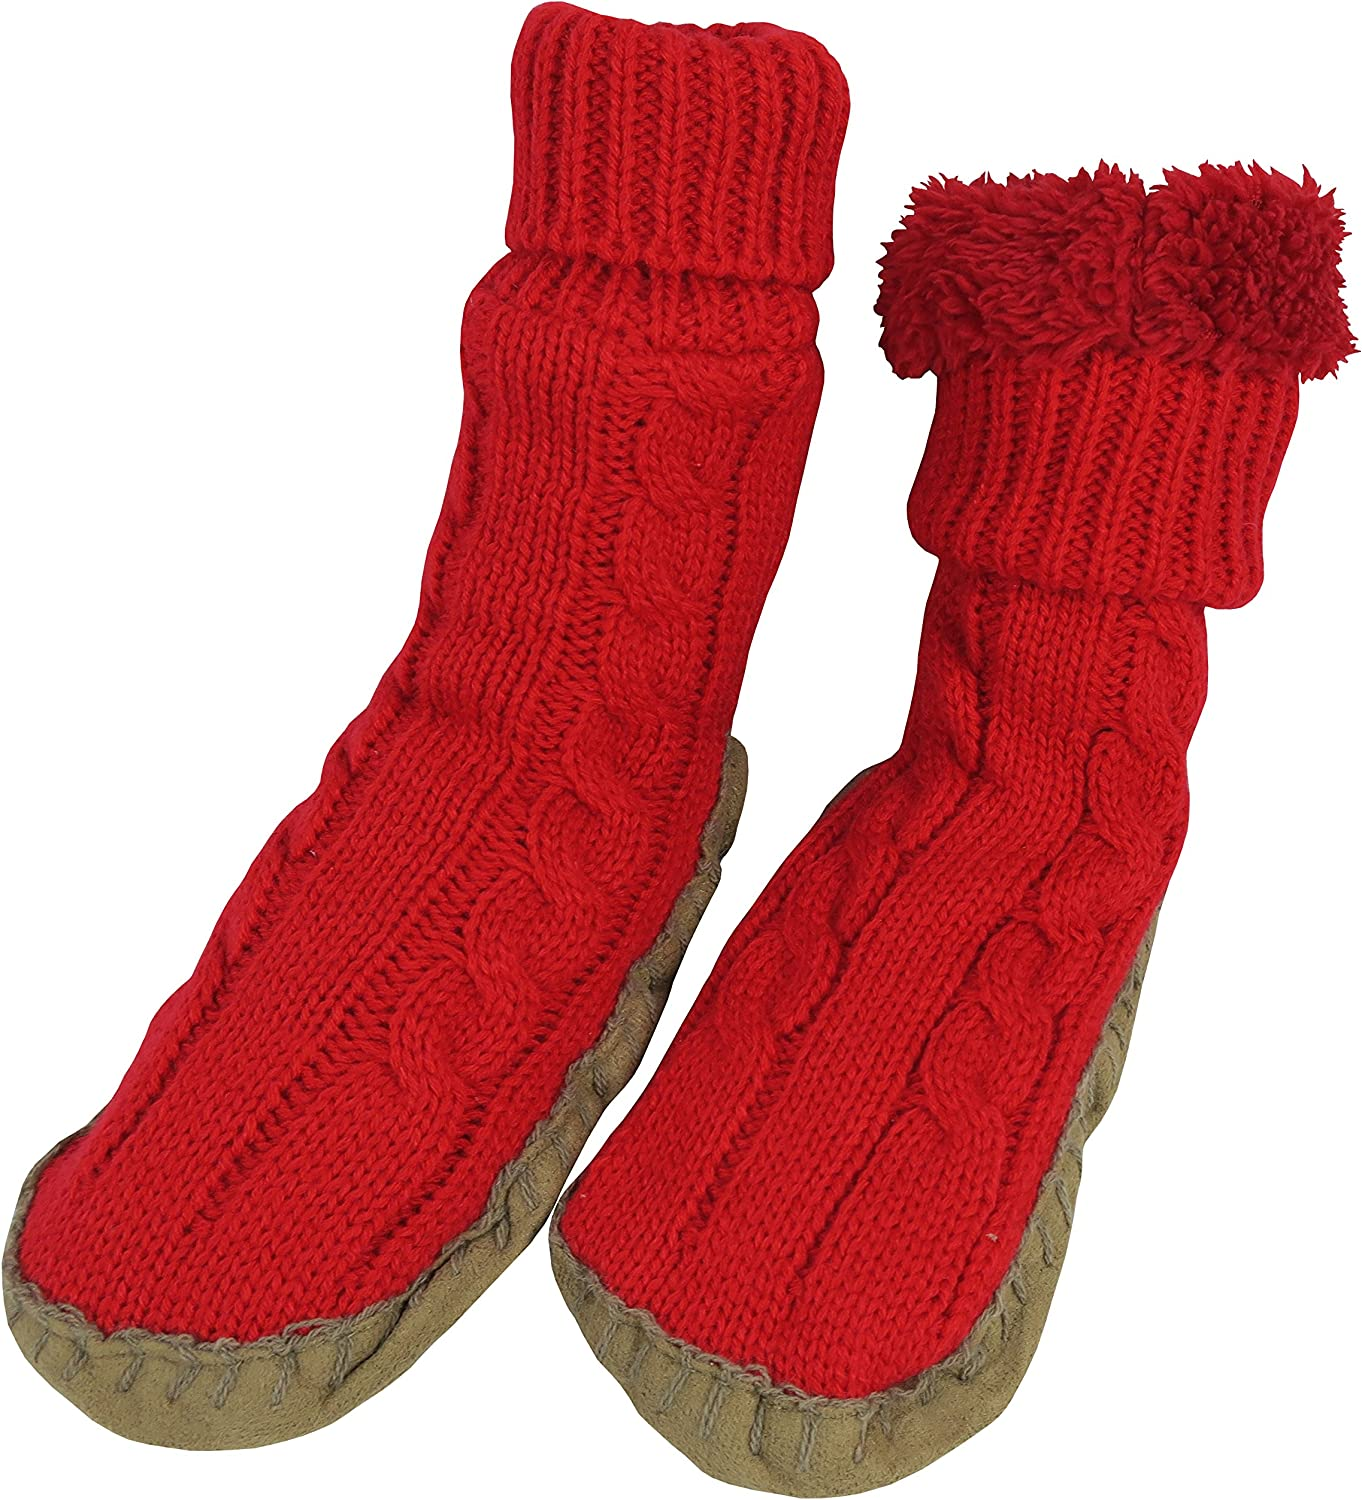 N'Ice Cheap Caps Jacksonville Mall Girls Cable Knit Gripper Slipper Non-Skid Socks with